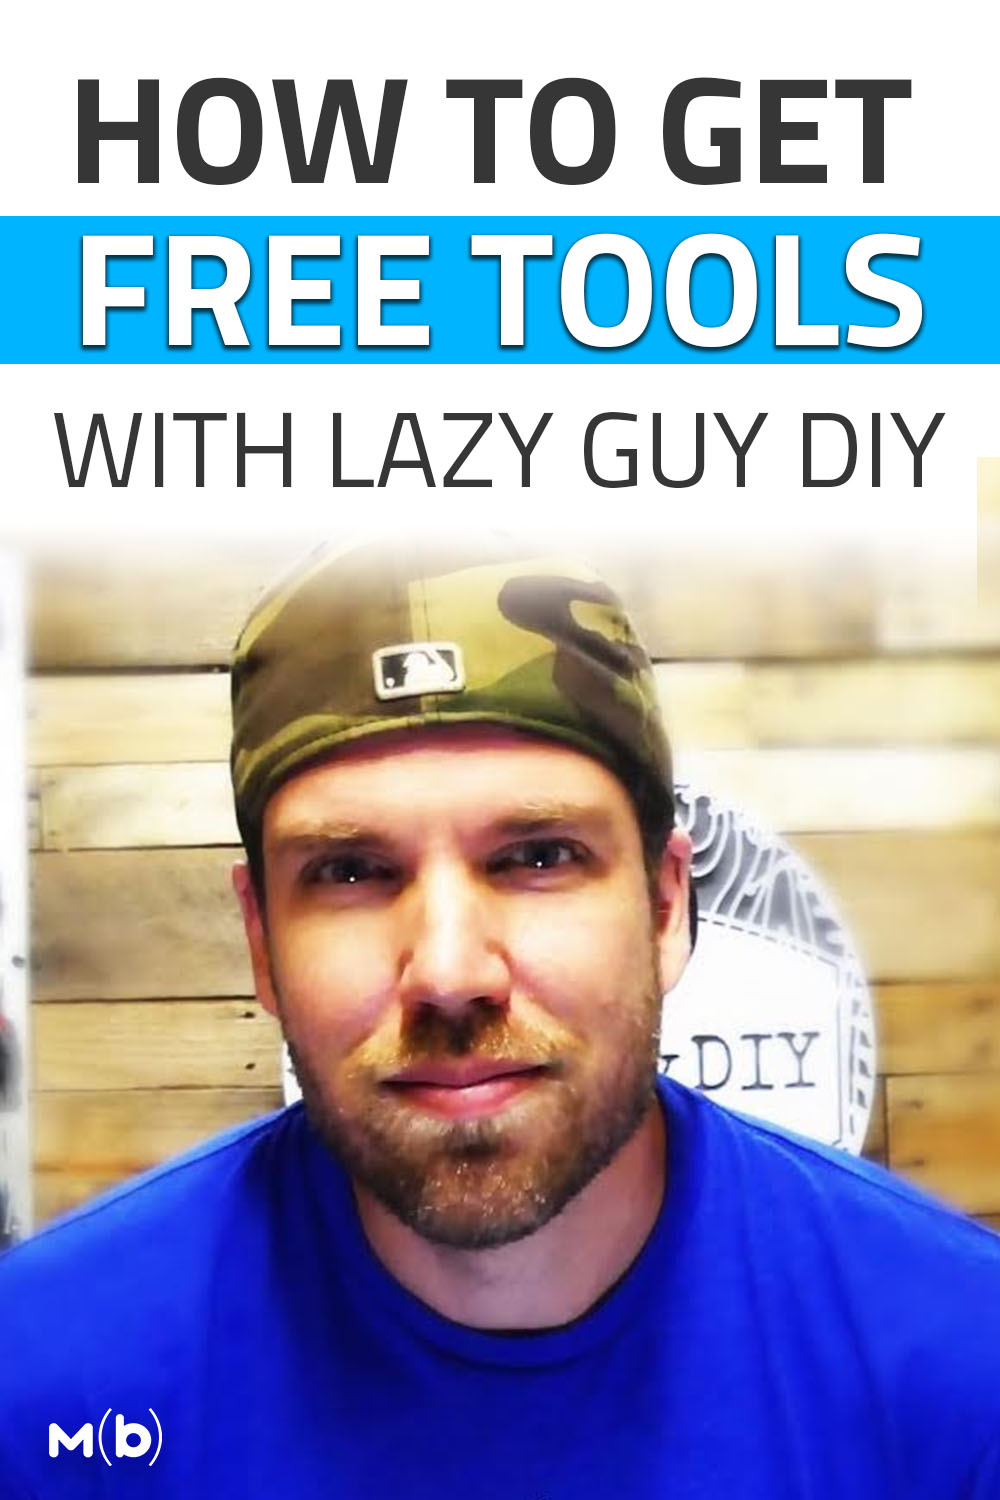 What does it take to work with brands? On the podcast we chat with Adam Beasley from Lazy Guy DIY about his work both as a brand ambassador and running the brand programs for several tool companies!